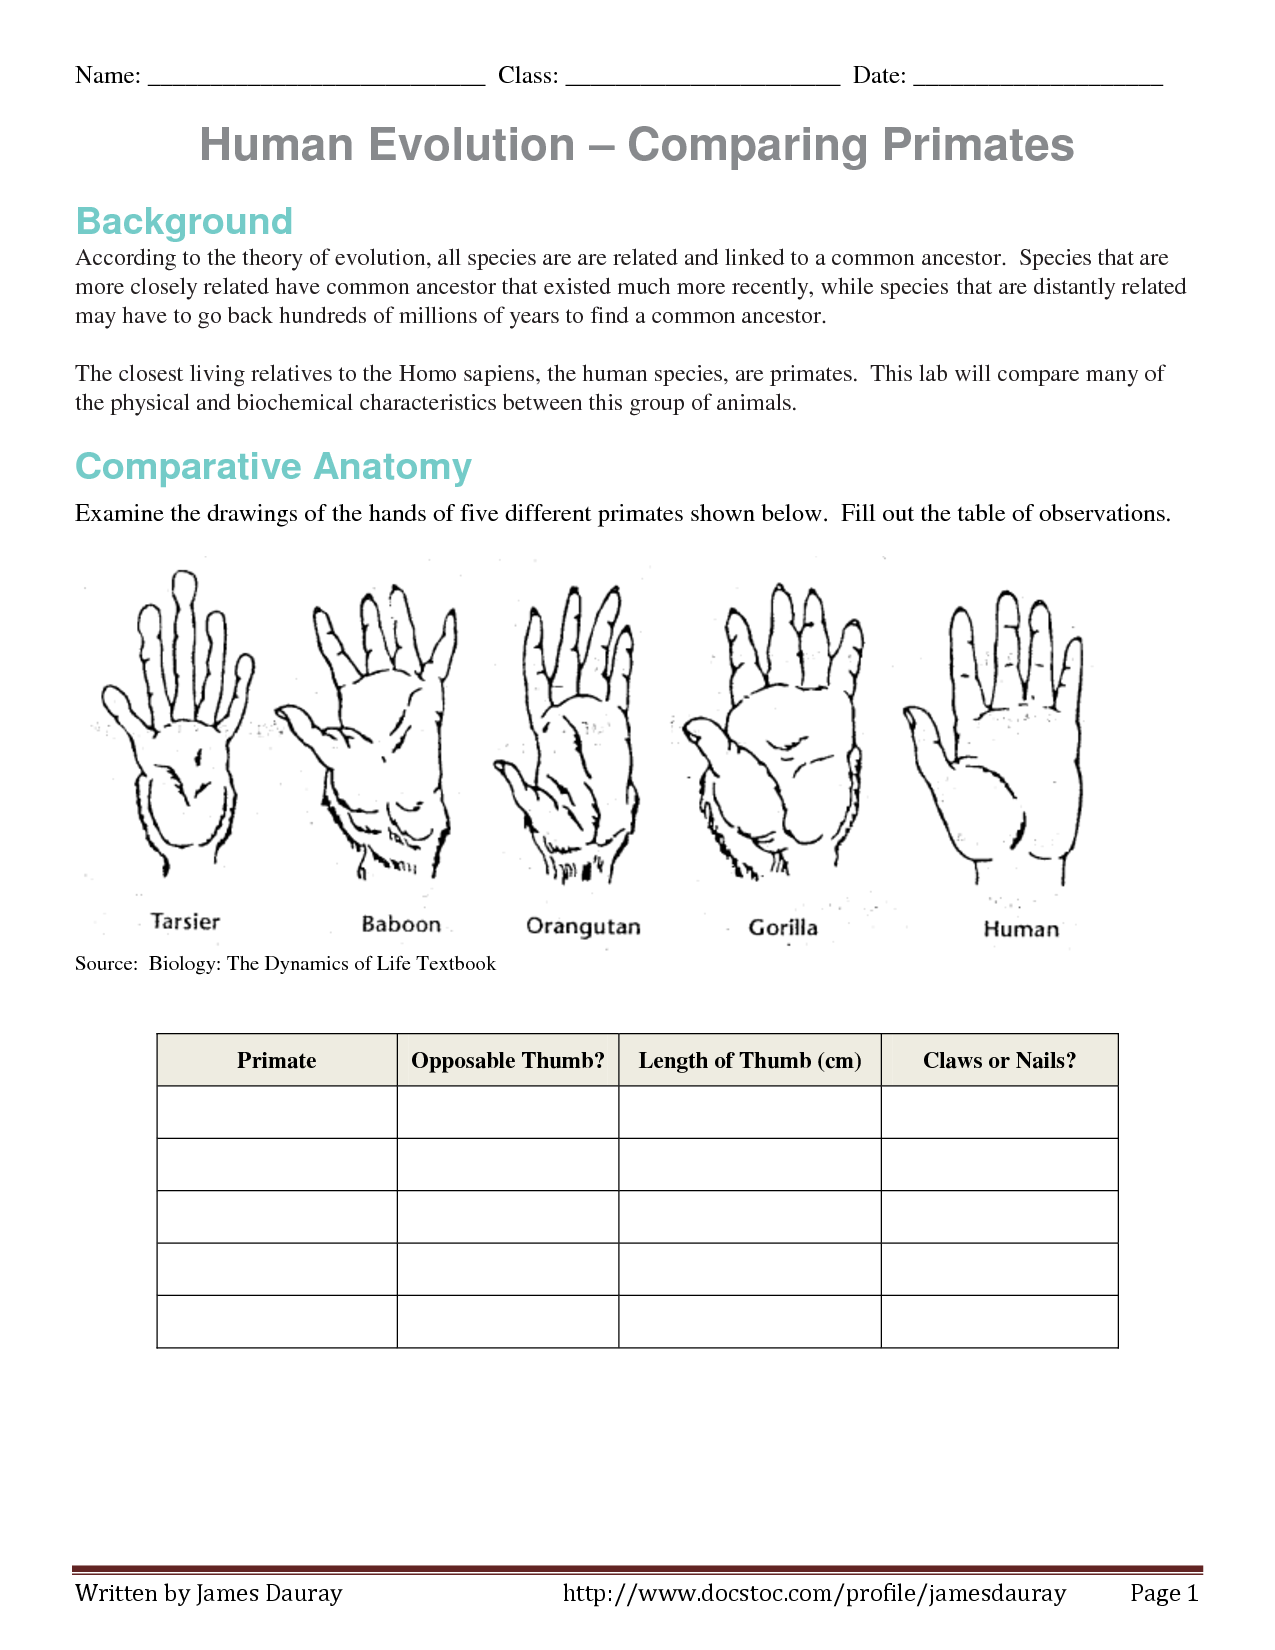 Biochemical Evidence For Evolution Worksheet - Talktoak